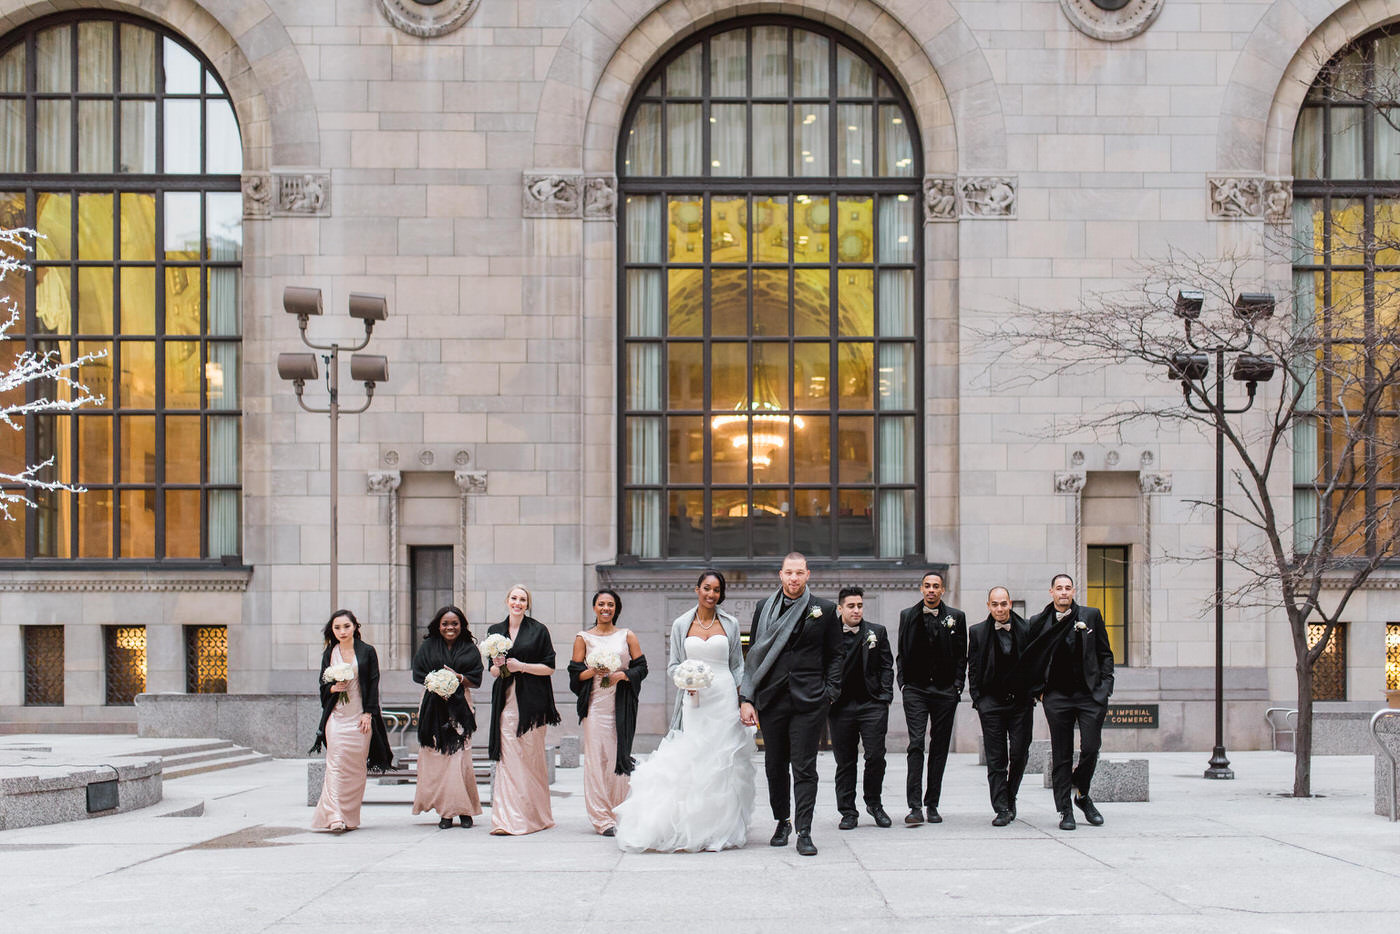 Wedding party walking downtown in Toronto on New Year's Eve wedding at One King West